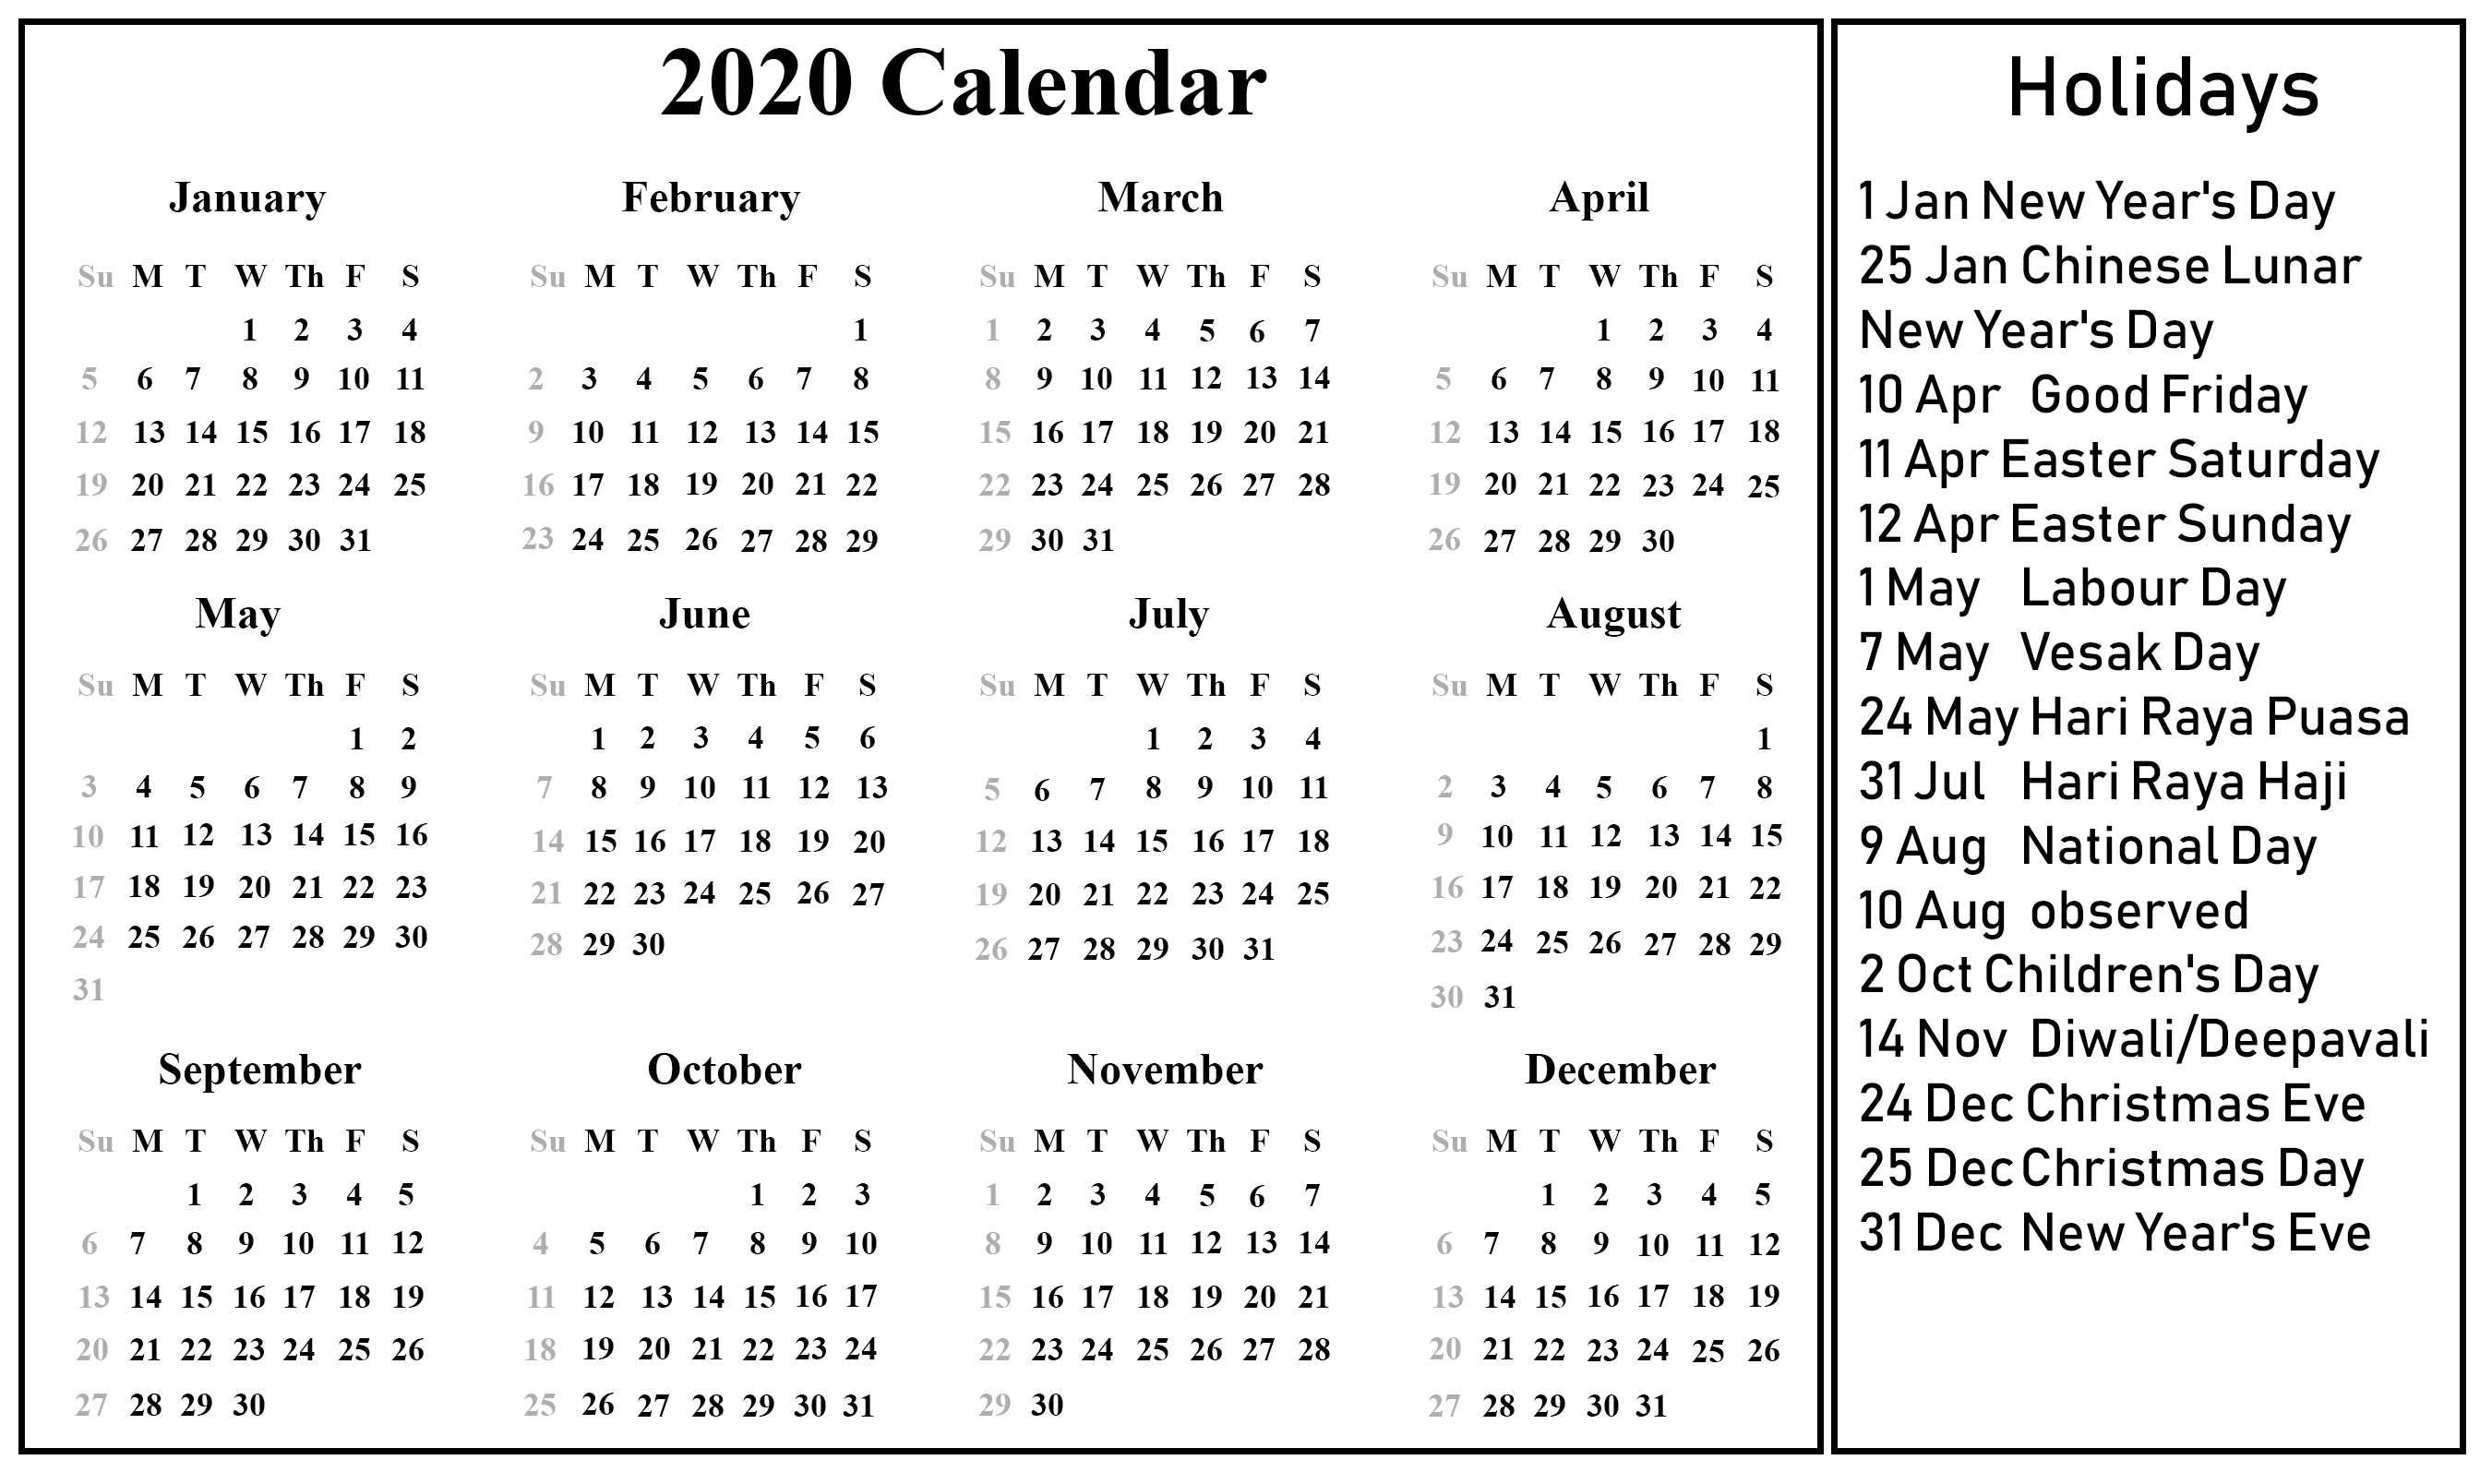 Free Printable 2020 Calendar – One Page Template | Holiday